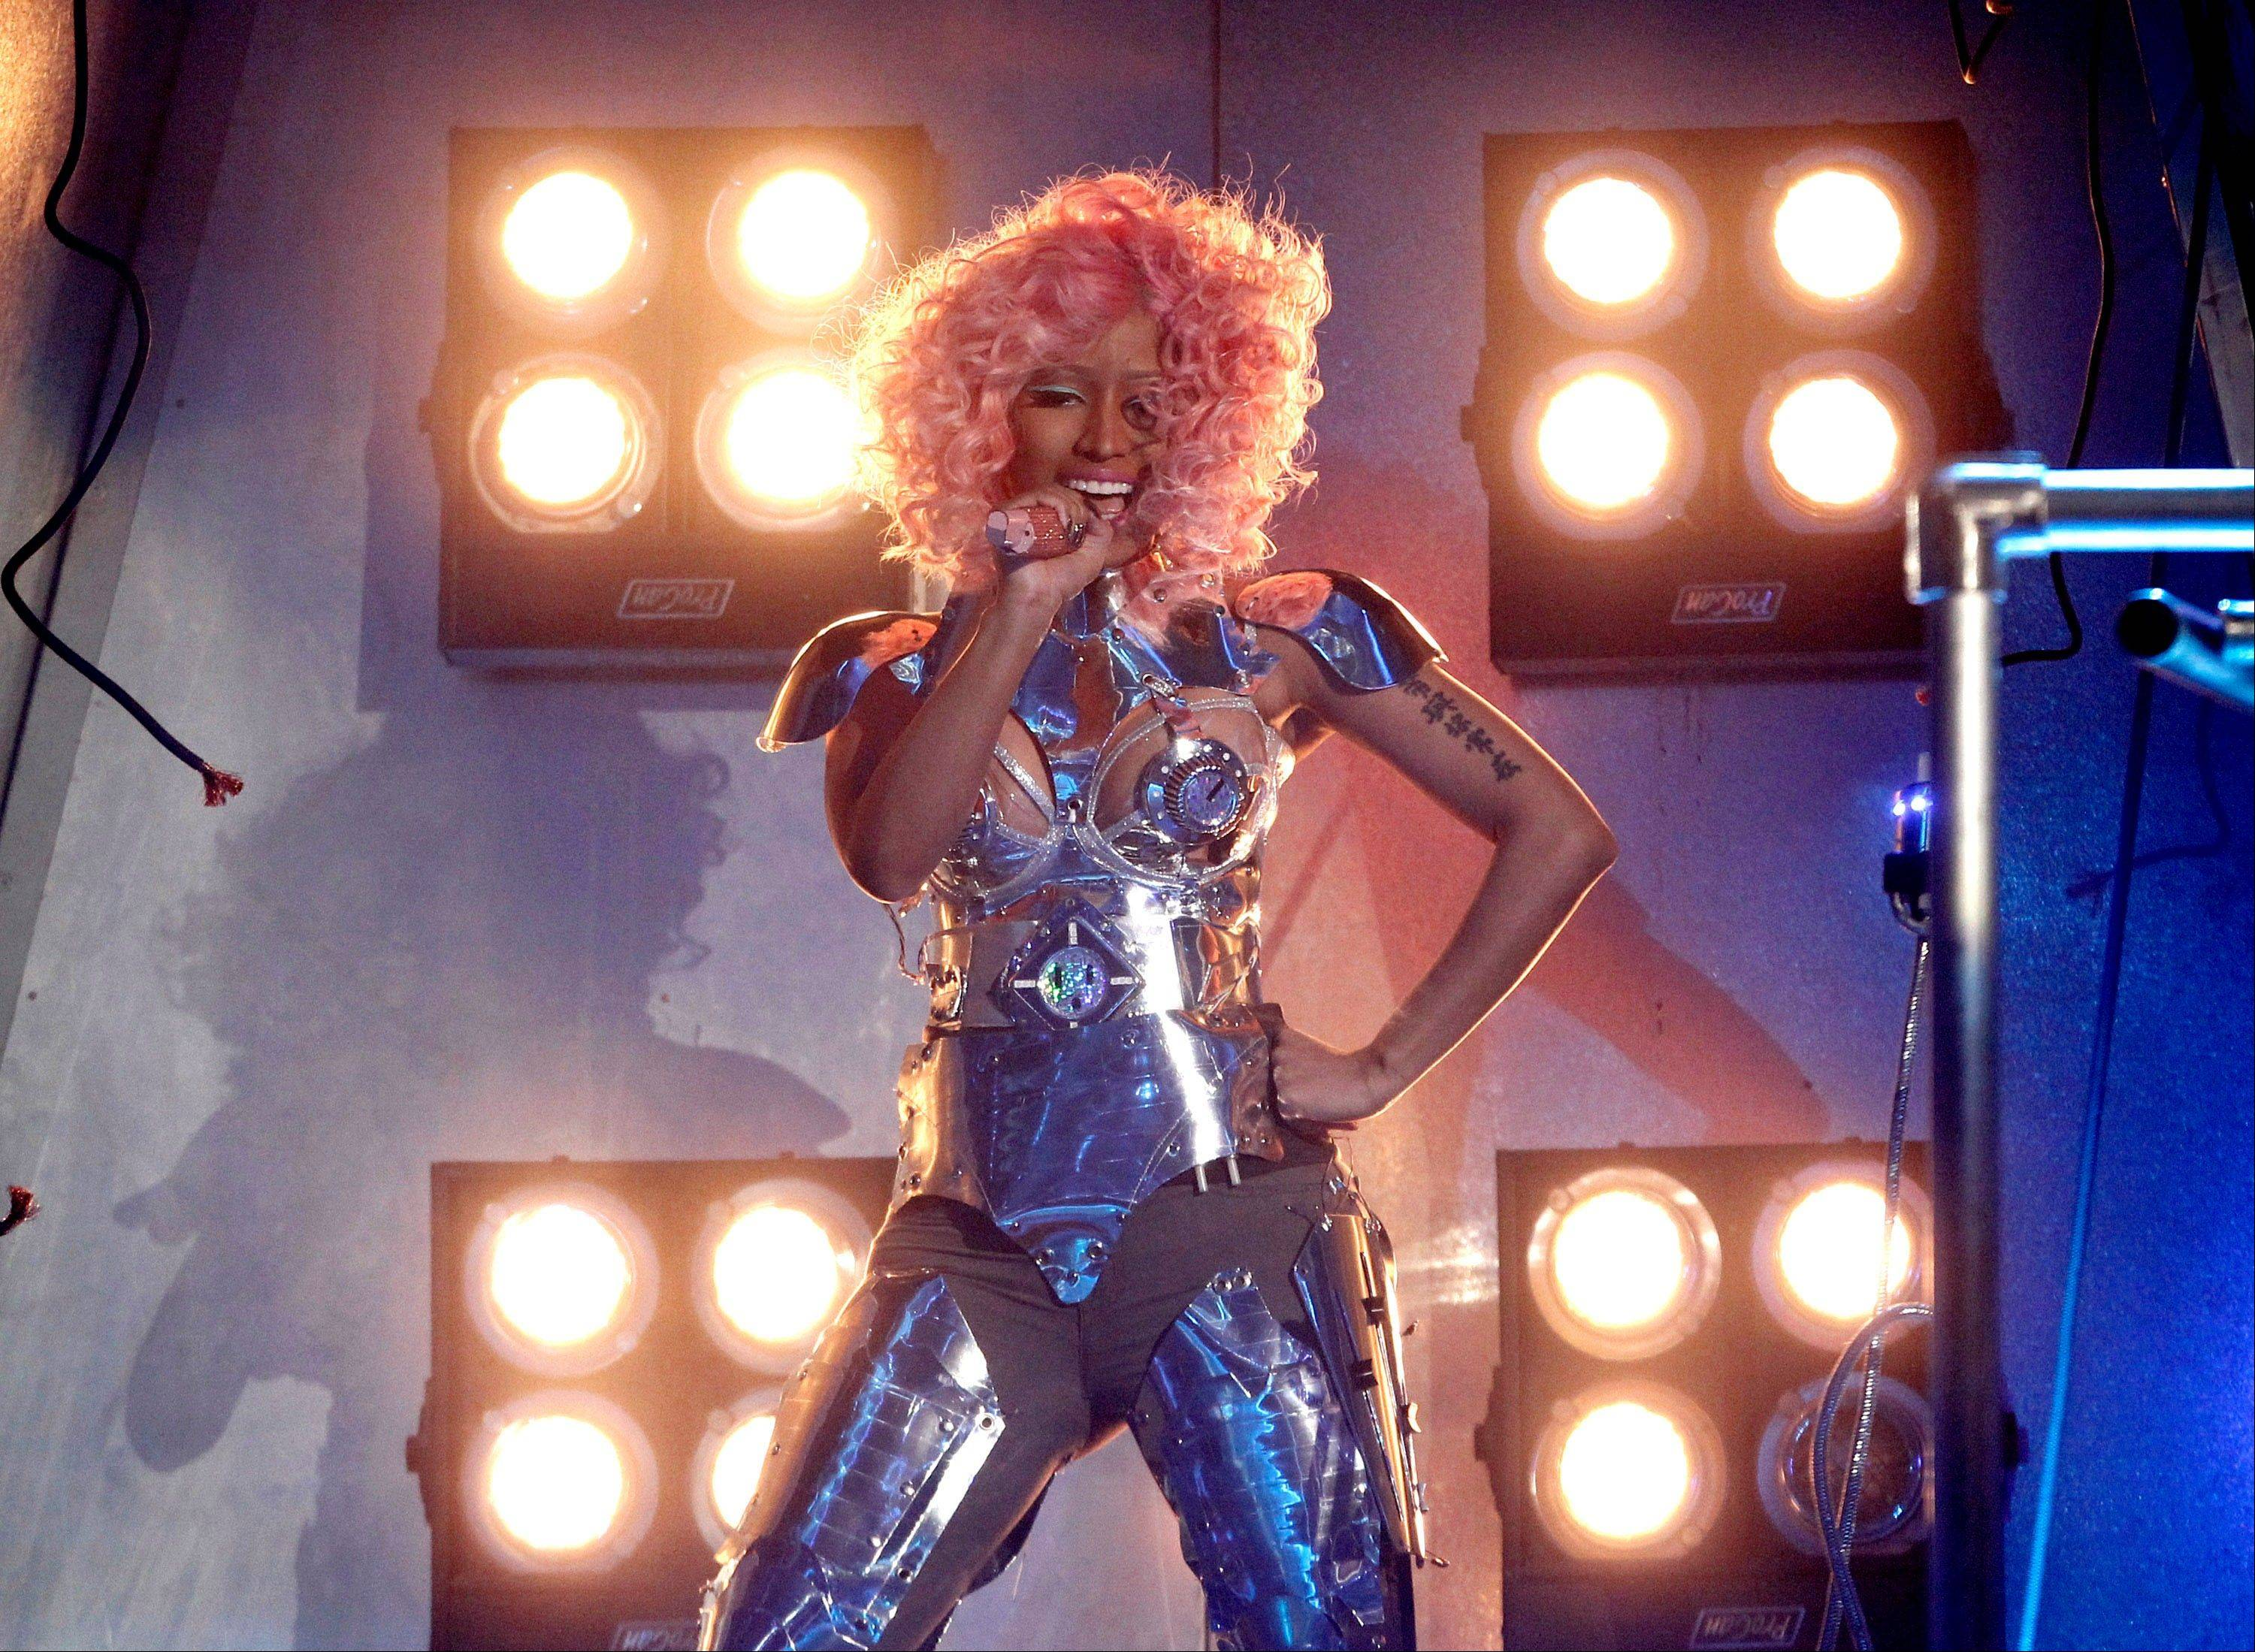 Nicki Minaj performs at the 39th Annual American Music Awards on Sunday, Nov. 20, 2011 in Los Angeles.